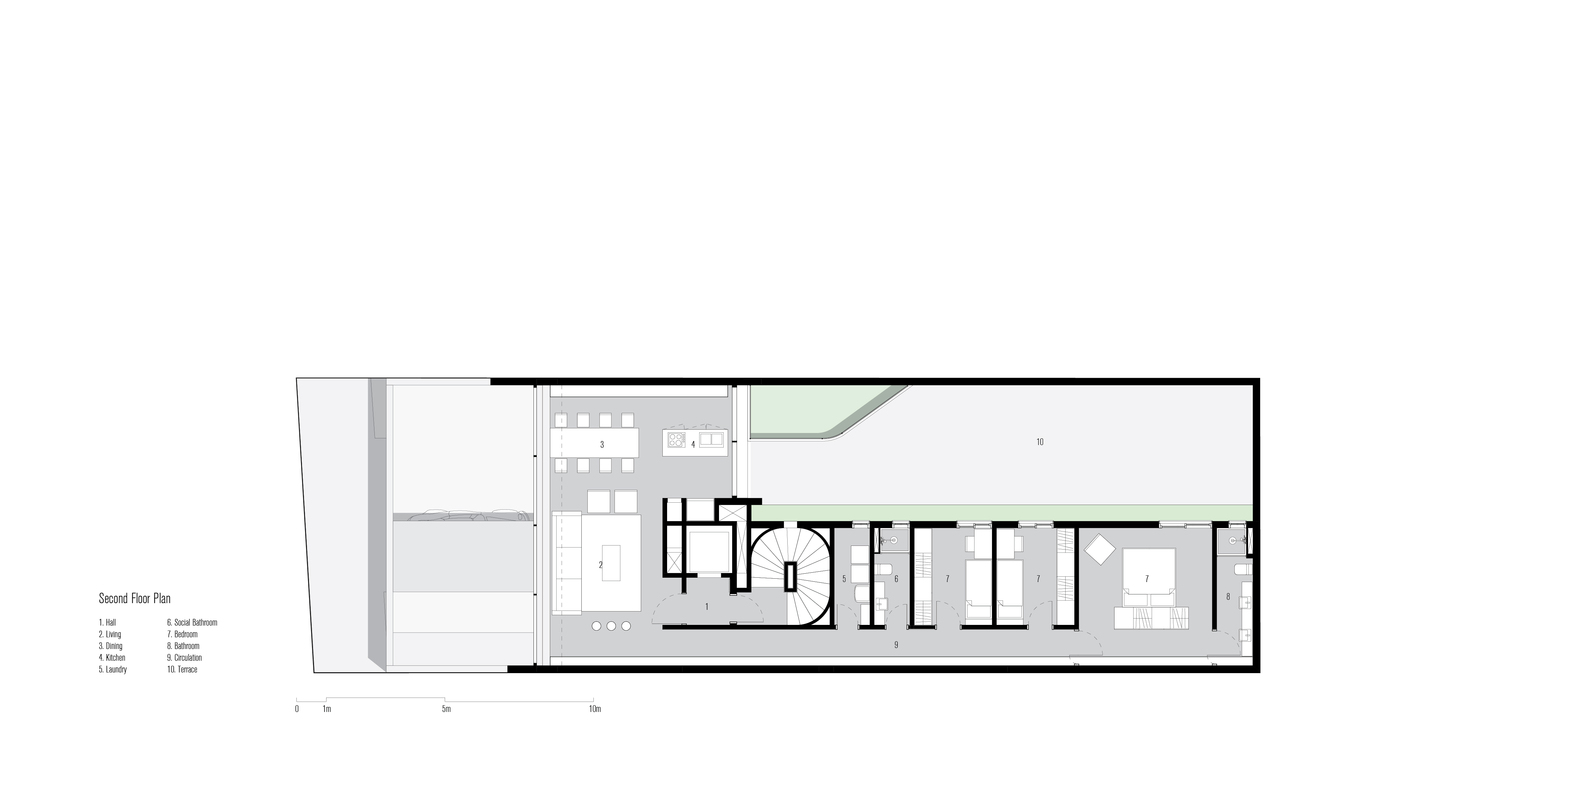 2._SECOND_FLOOR_PLAN